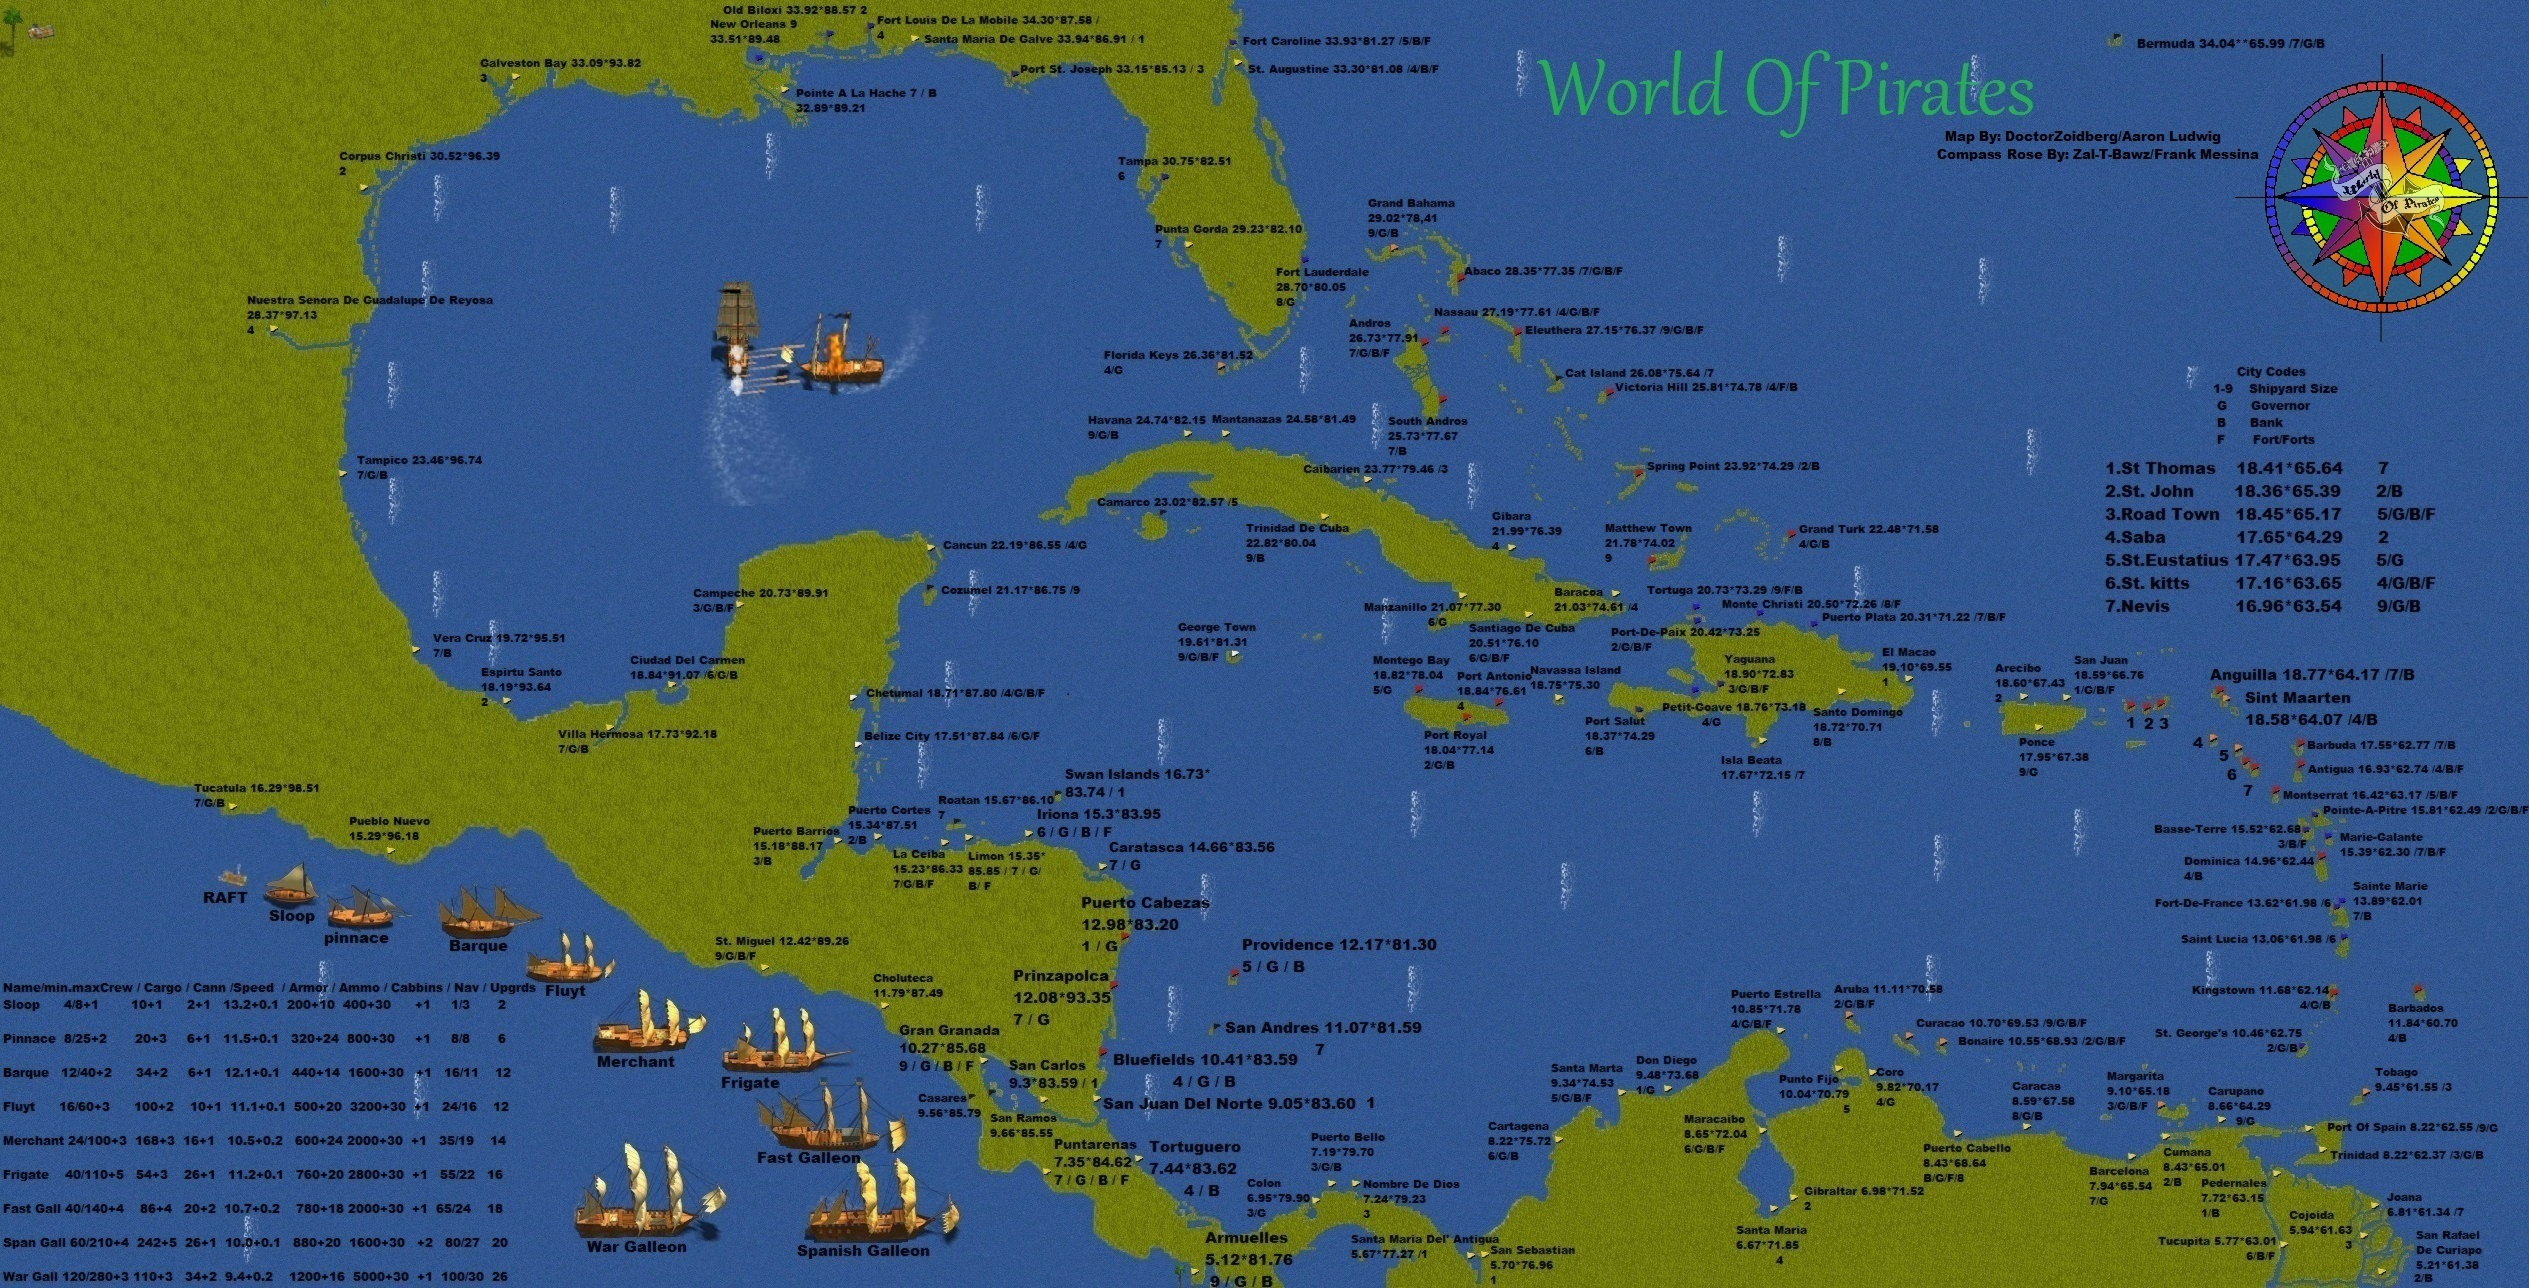 Pirate World Map.World Of Pirates Map